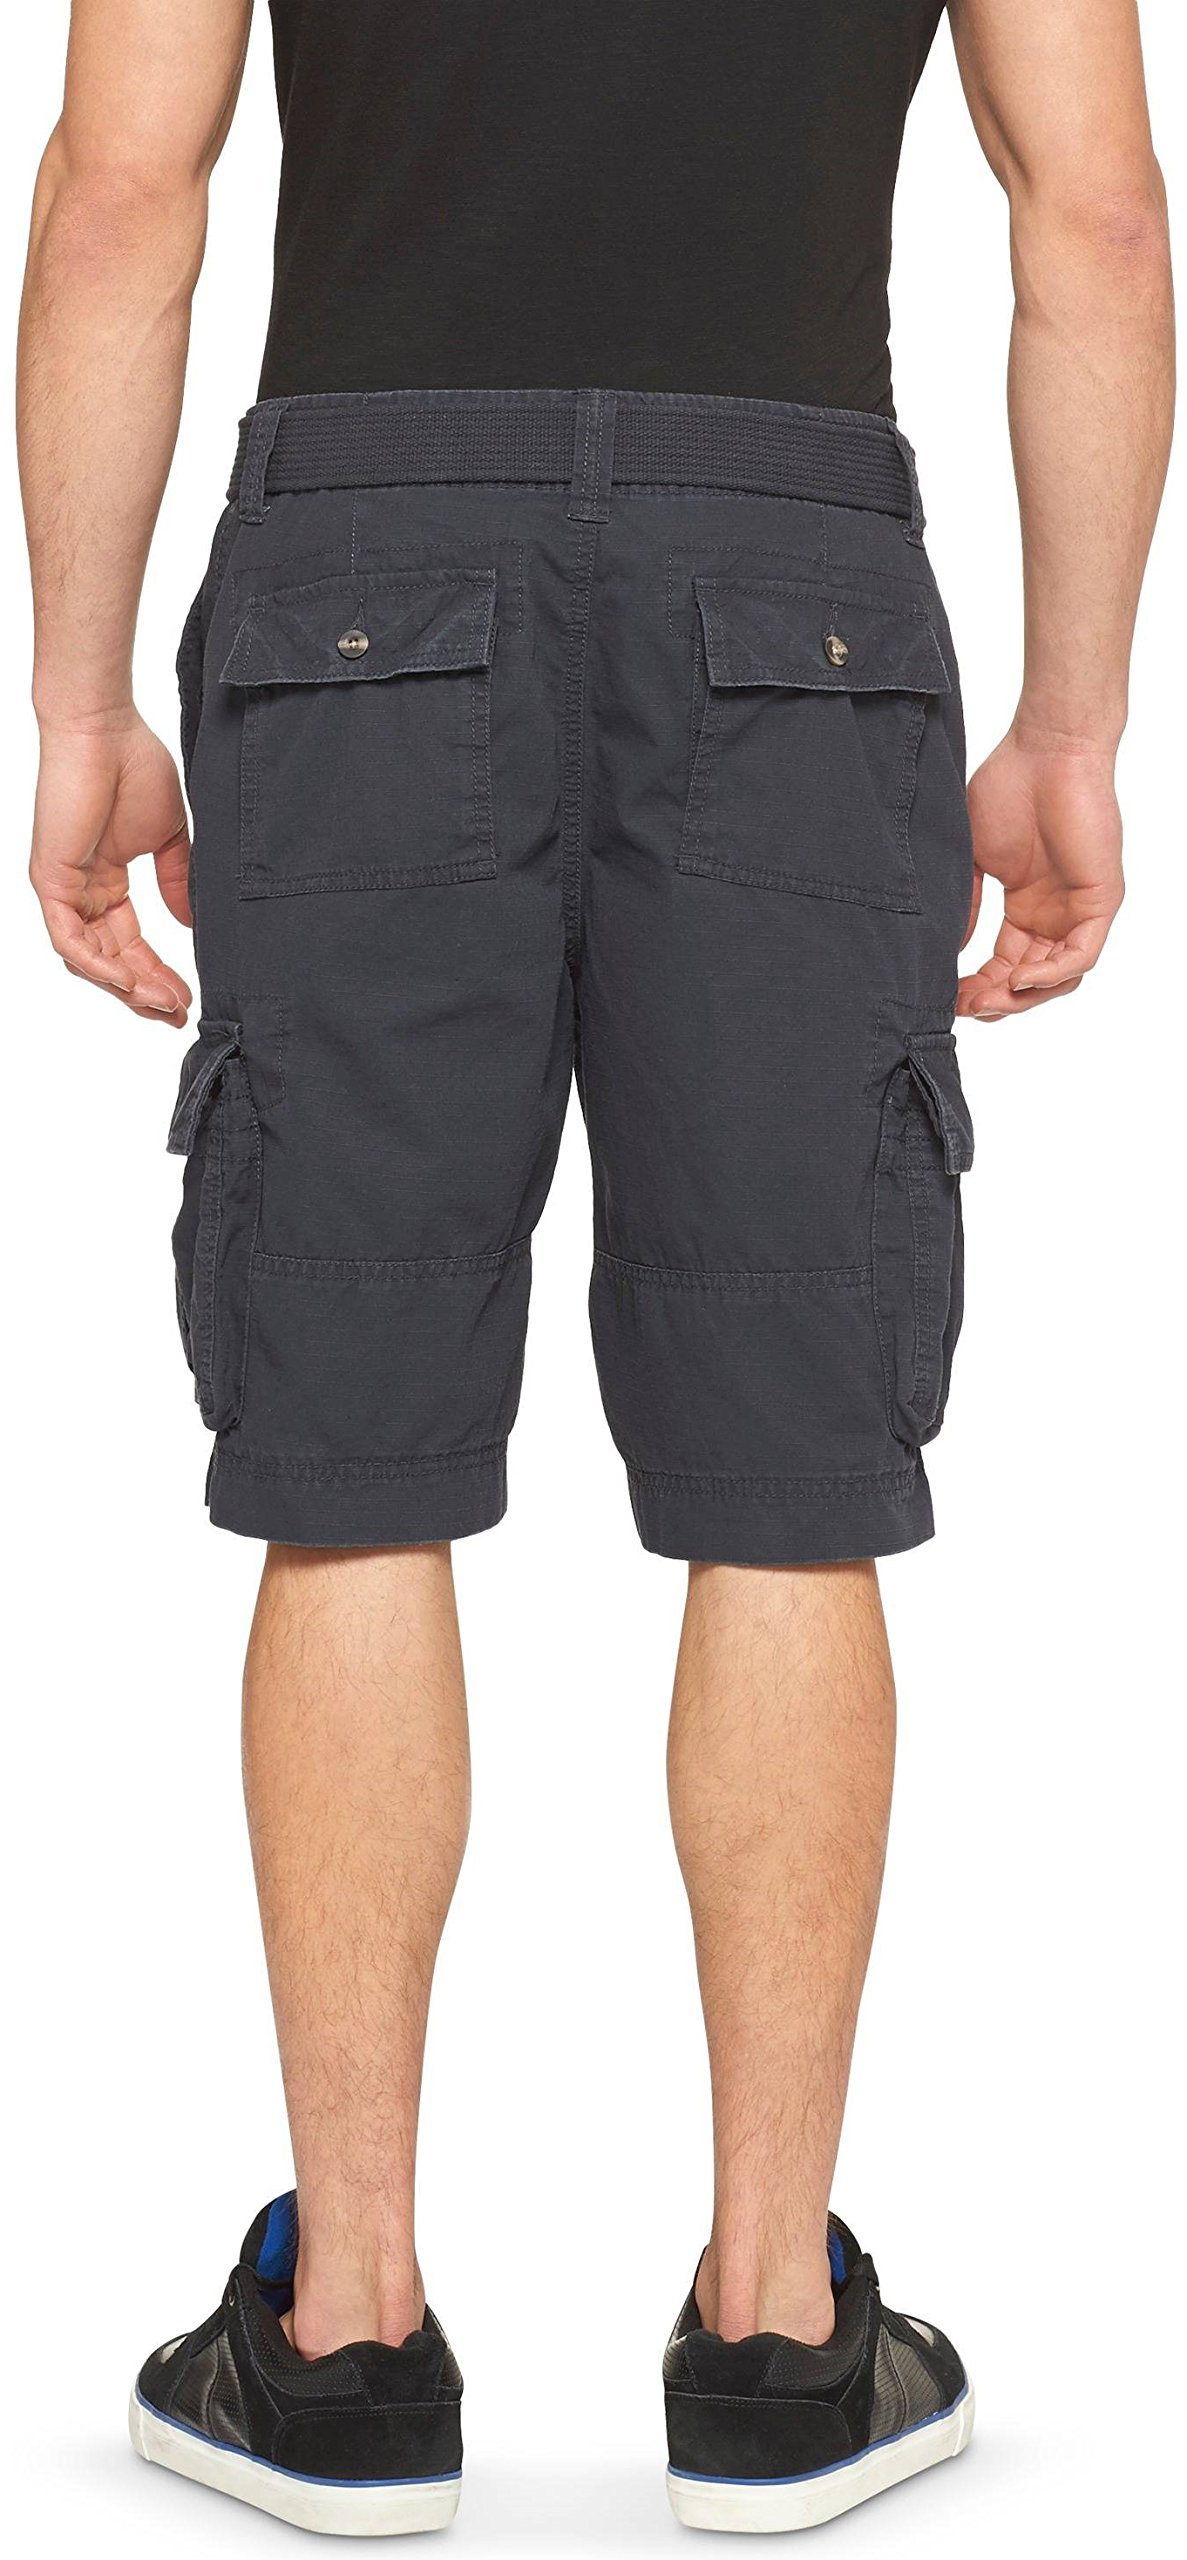 Mossimo Men's Belted Cargo Shorts (Black, 28) by Masked Brand (Image #2)